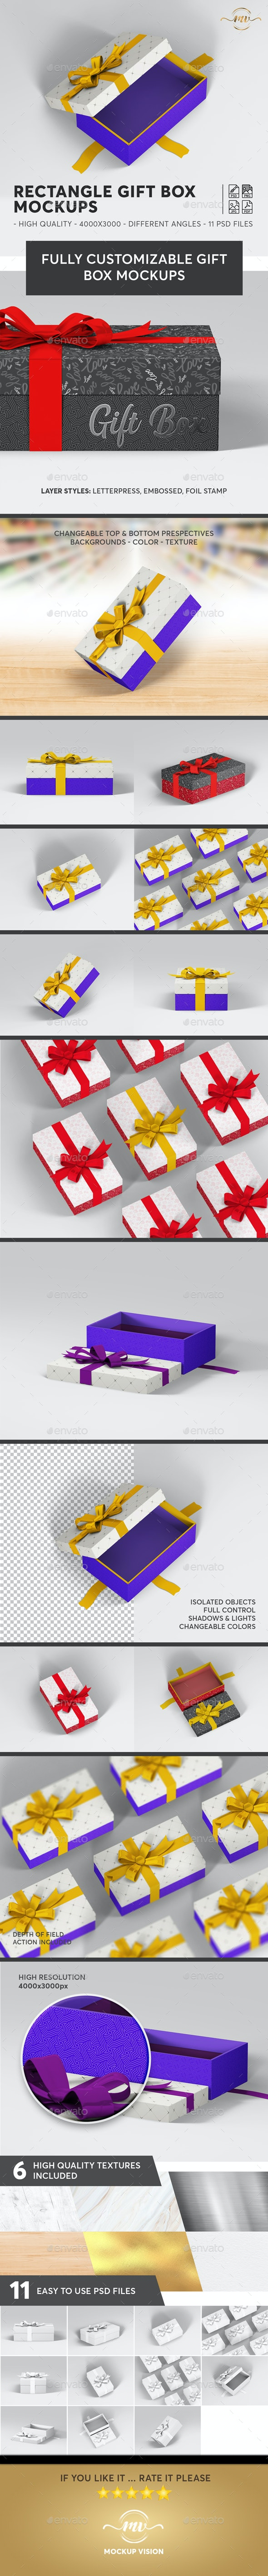 Gift Box Rectangle Mockups - Miscellaneous Packaging